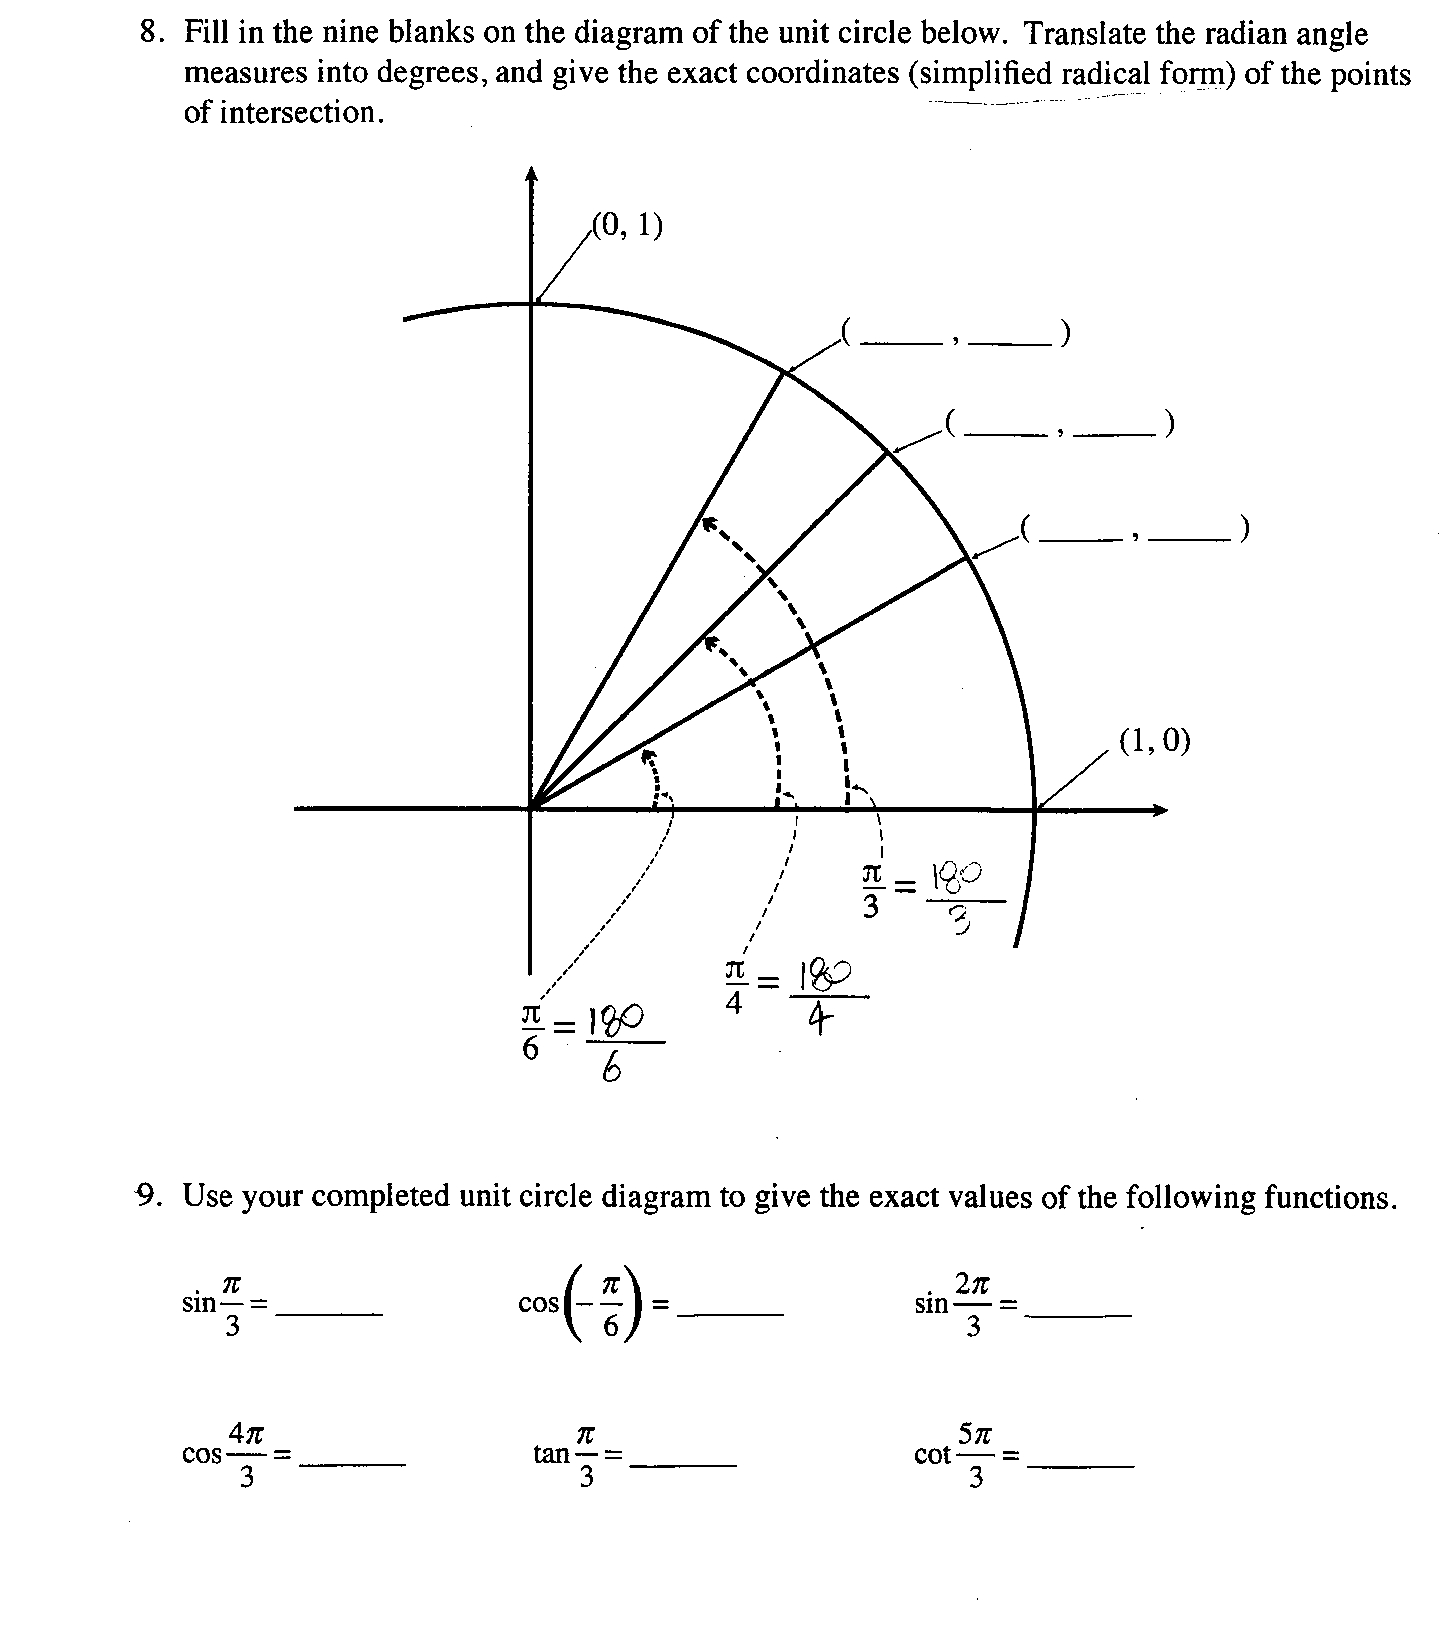 degree circle diagram 1997 ford expedition car radio wiring solved 8 fill in the nine blanks on of u